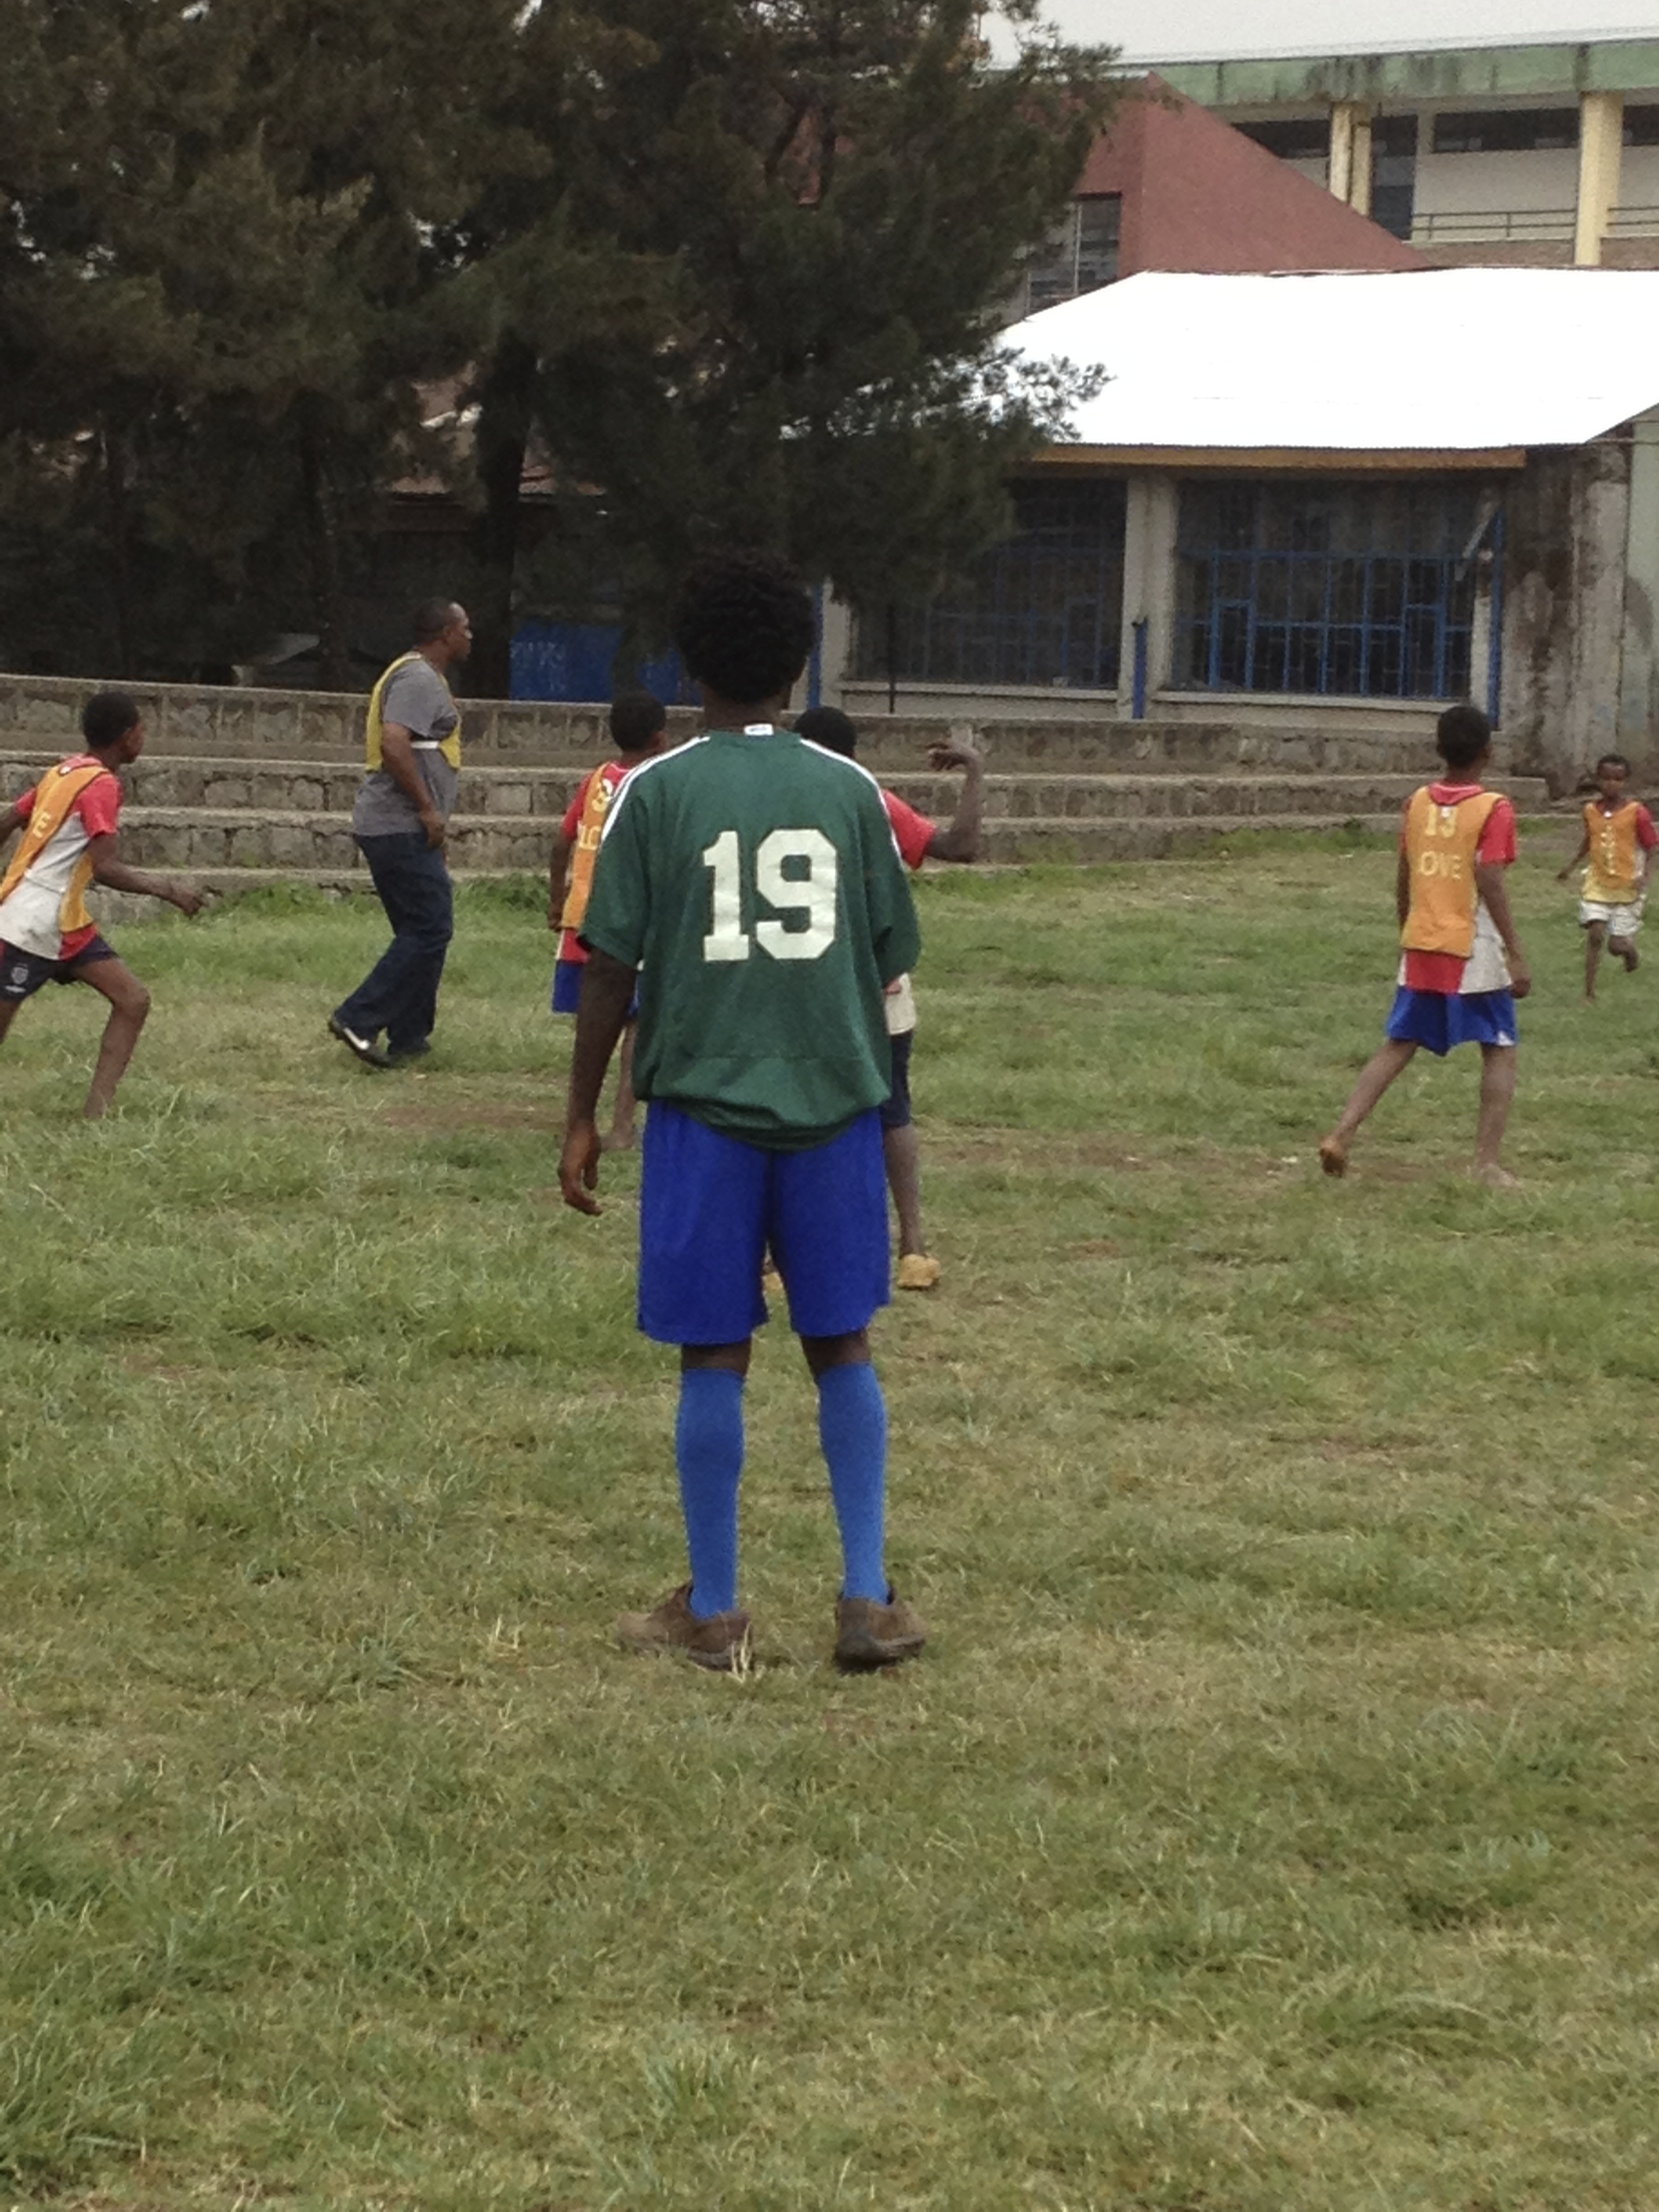 Nega playing soccer with boys during my visit to Ethiopia in June